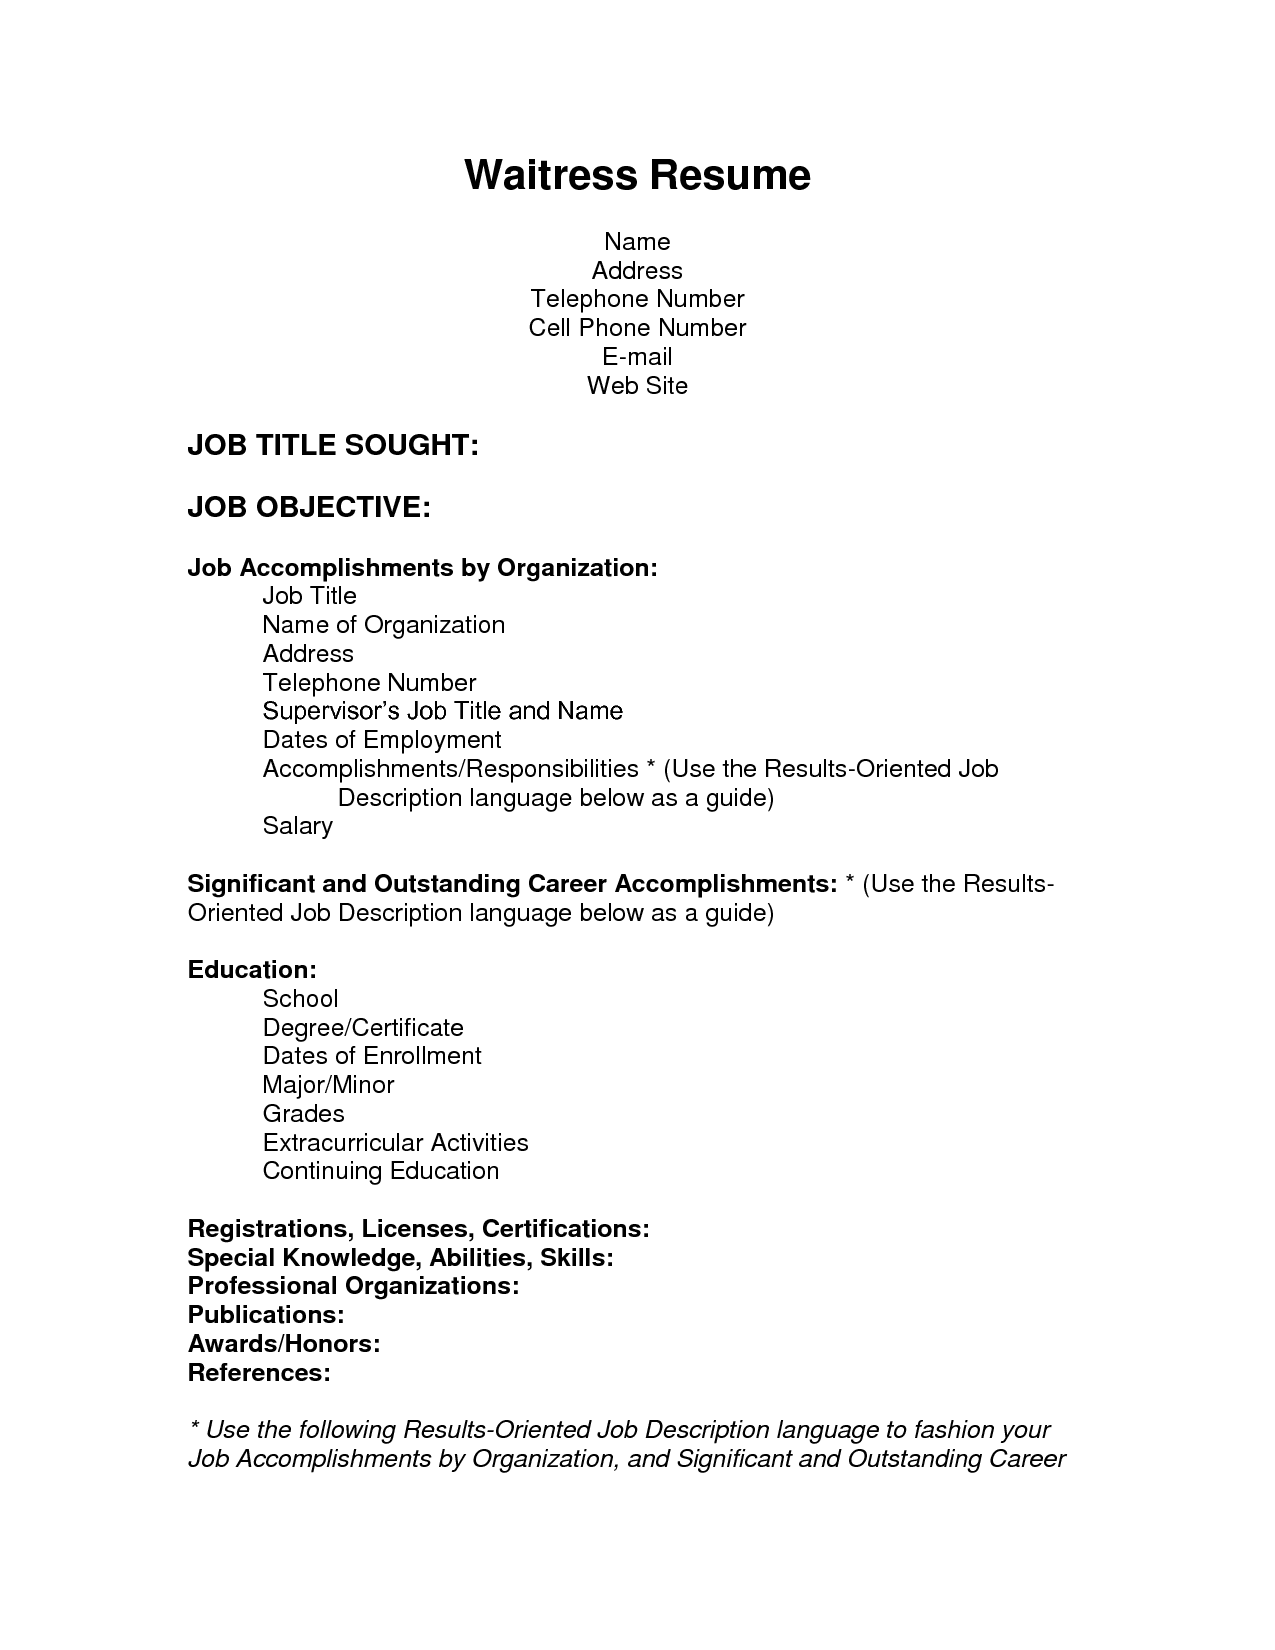 how to write a job description for a resume